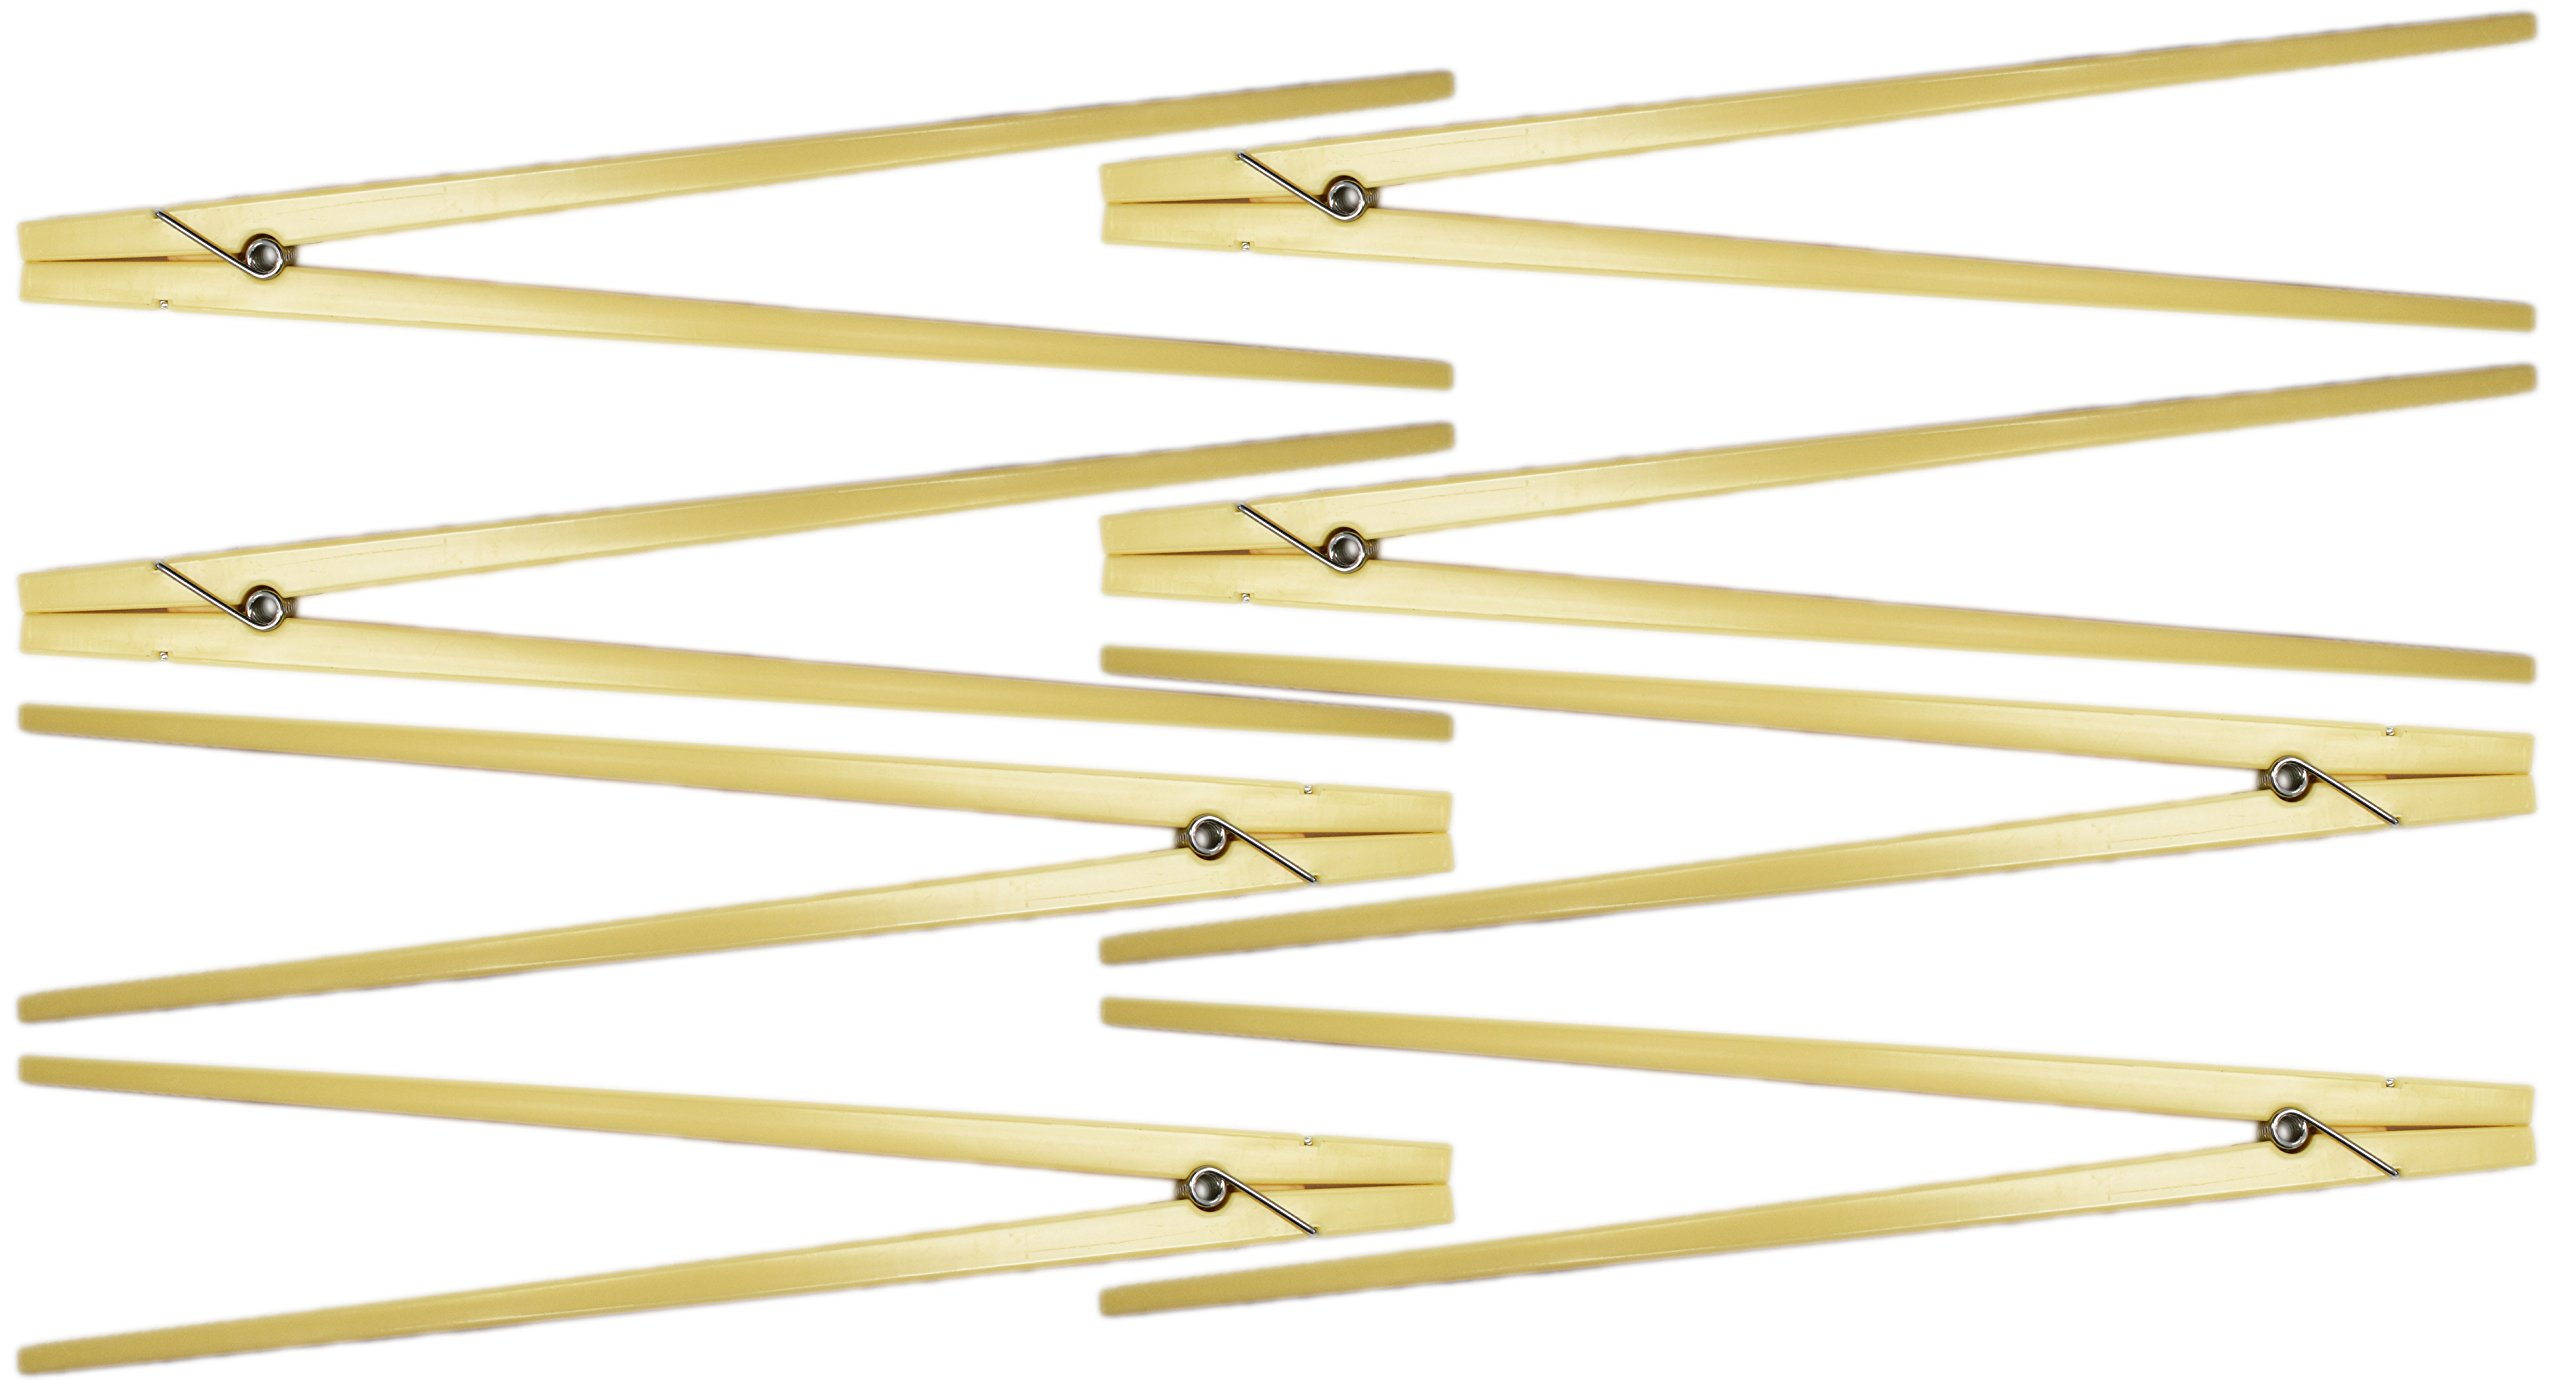 Set of 8 Clothespin Chopsticks! 9'' Inches Long - Training Chopsticks - Reusable - Beginners Chopsticks Perfect for any Age and Occasion! (8)